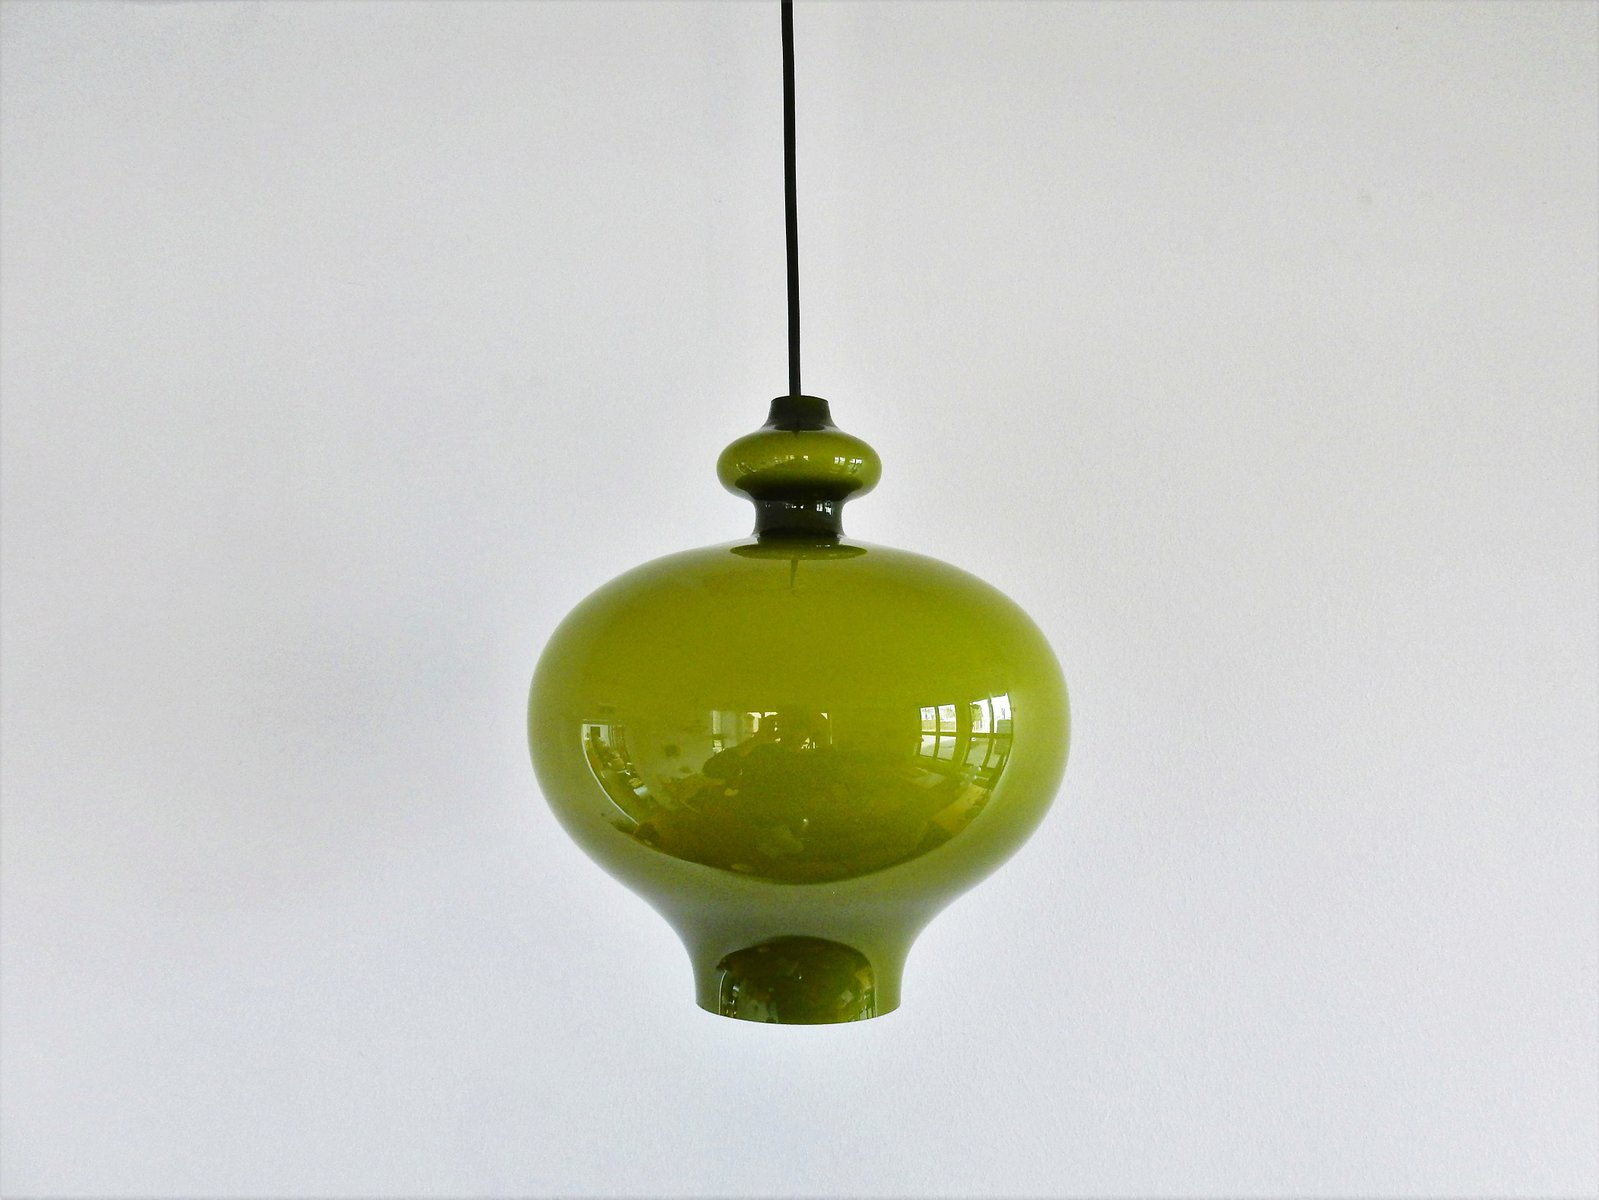 Green glass pendant lamp by hans agne jakobsson for markaryd 1960s green glass pendant lamp by hans agne jakobsson for markaryd 1960s aloadofball Choice Image